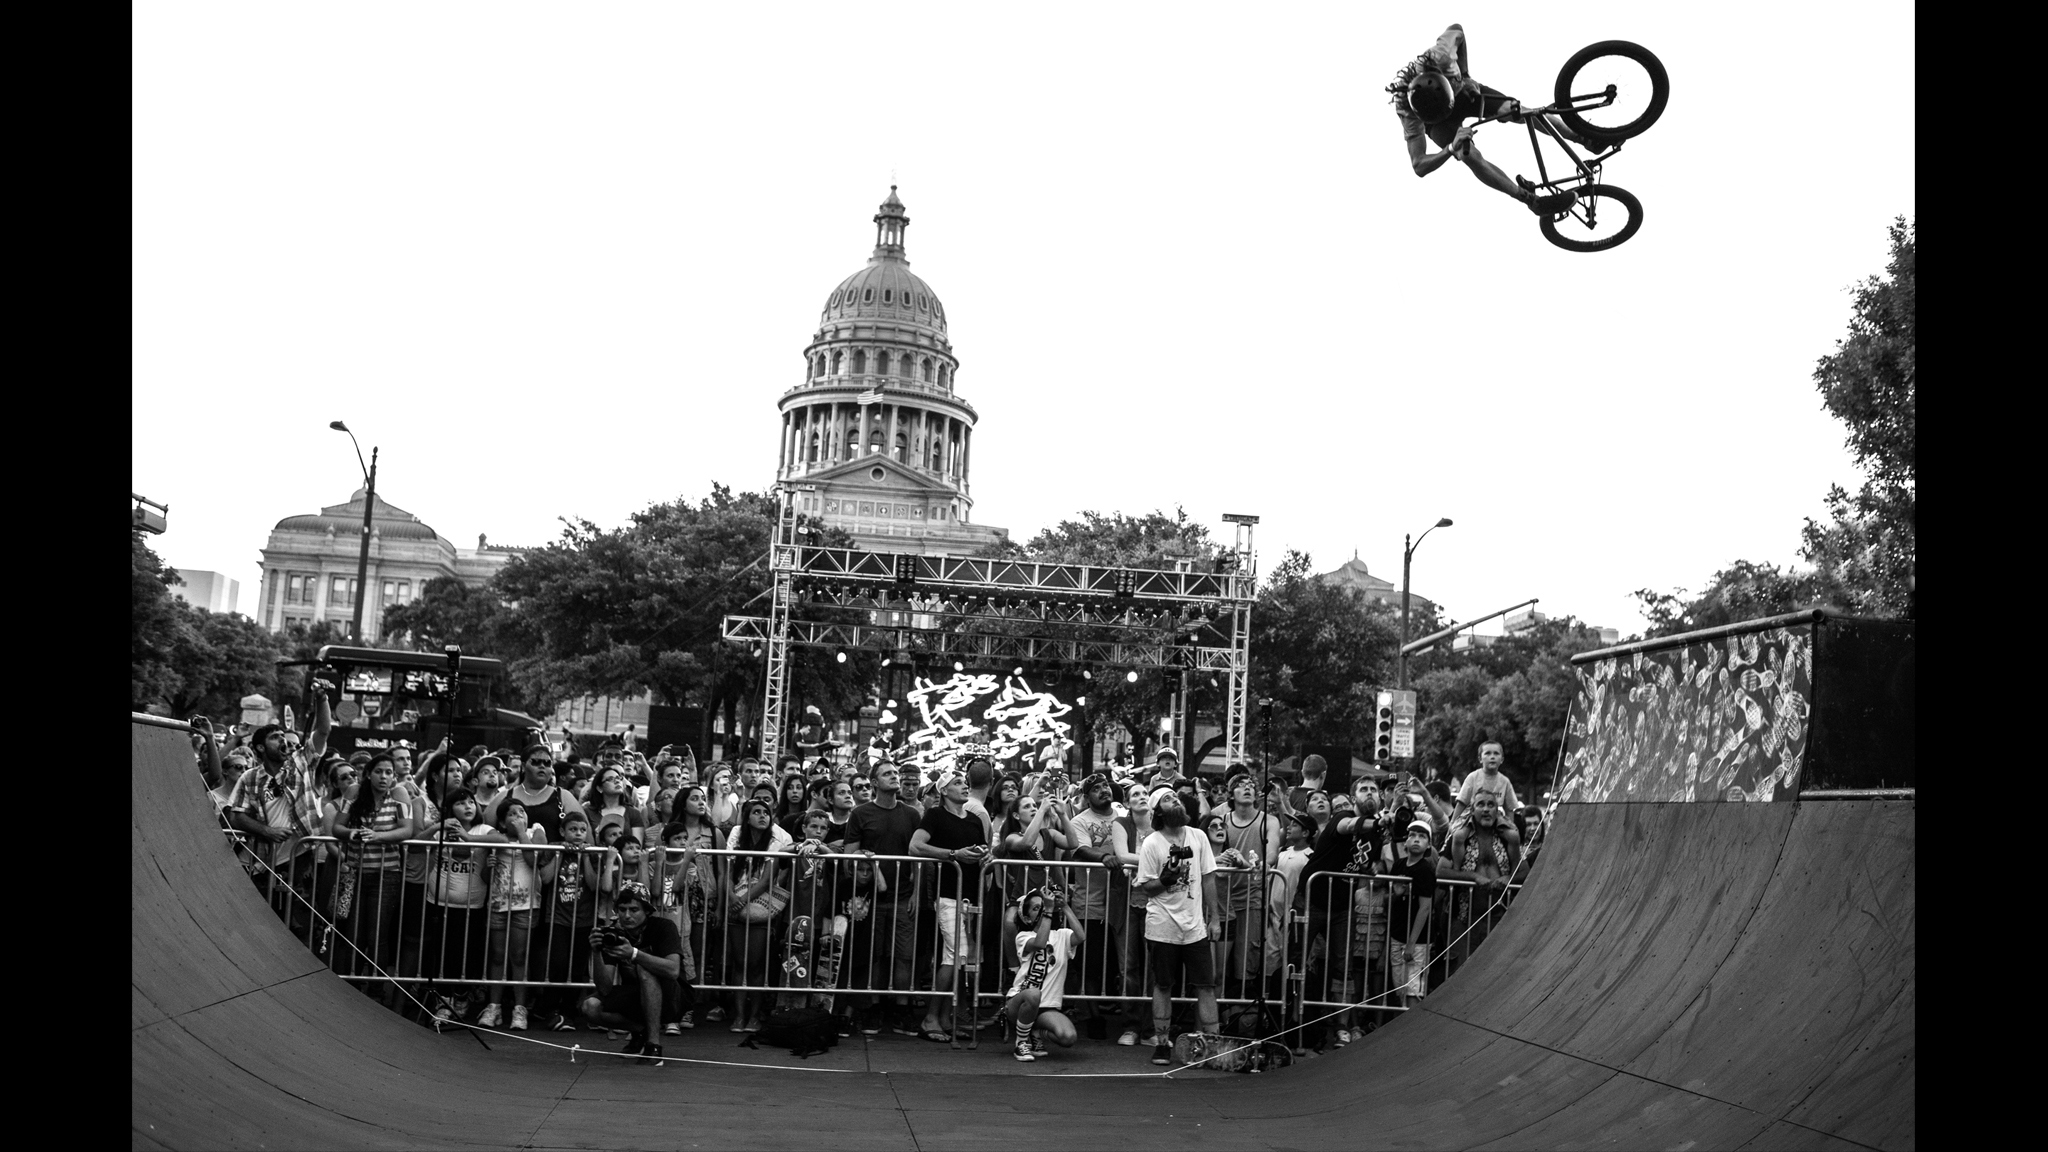 X Games Announces New Host City Of Austin, Texas For 2014